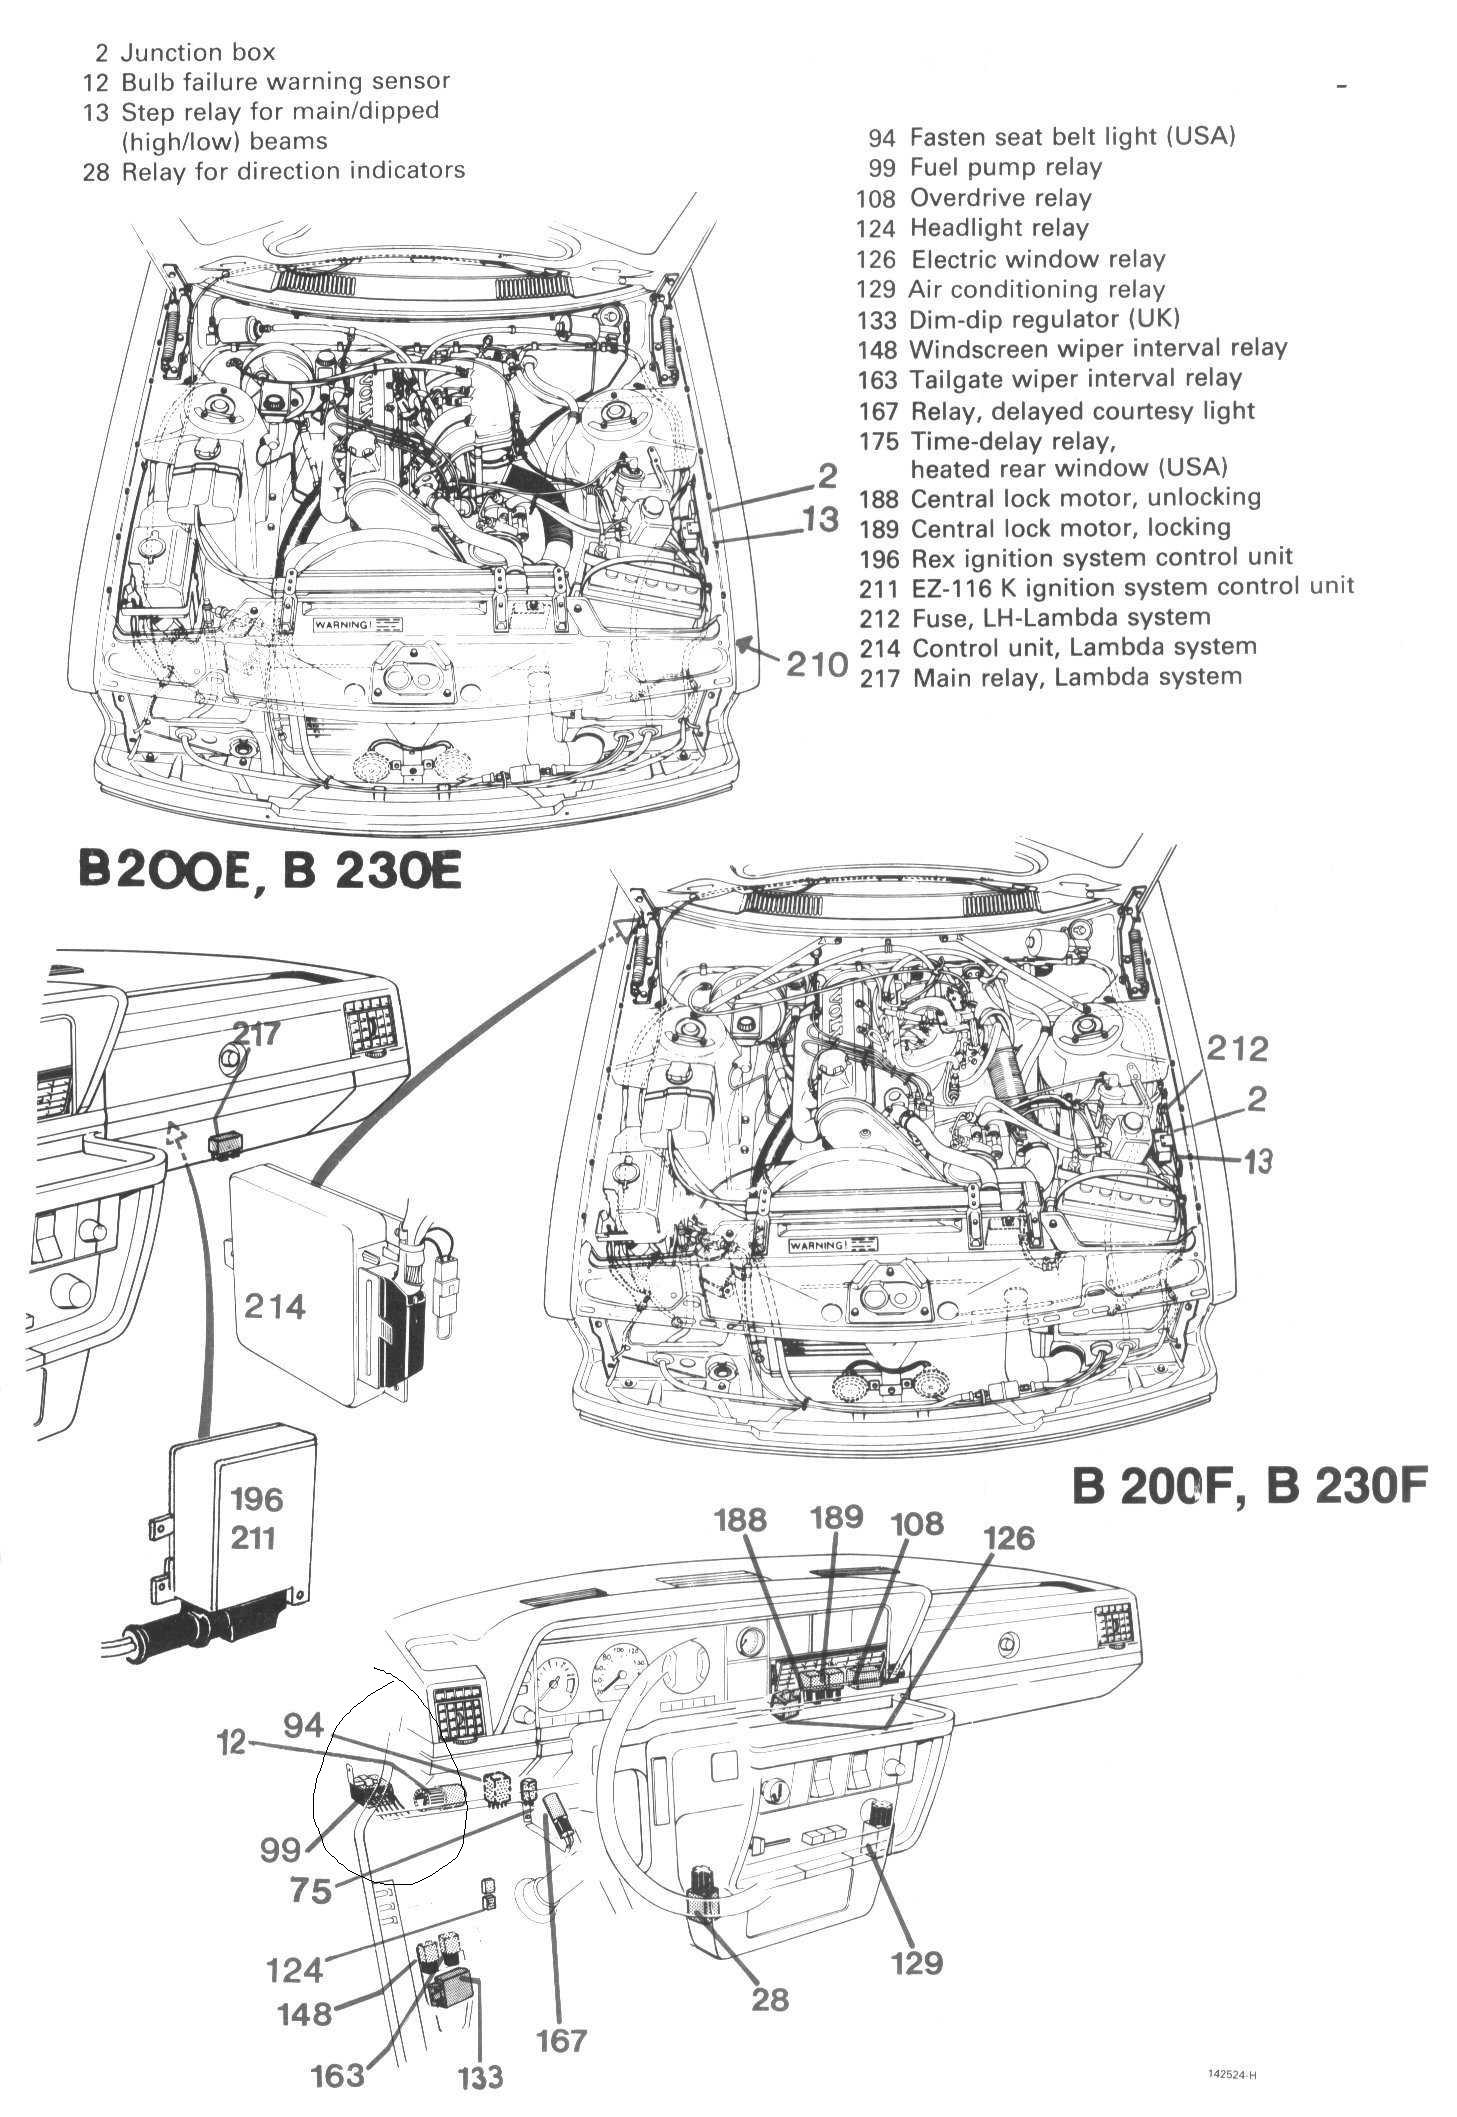 1991 volvo 240 fuse box diagram   31 wiring diagram images